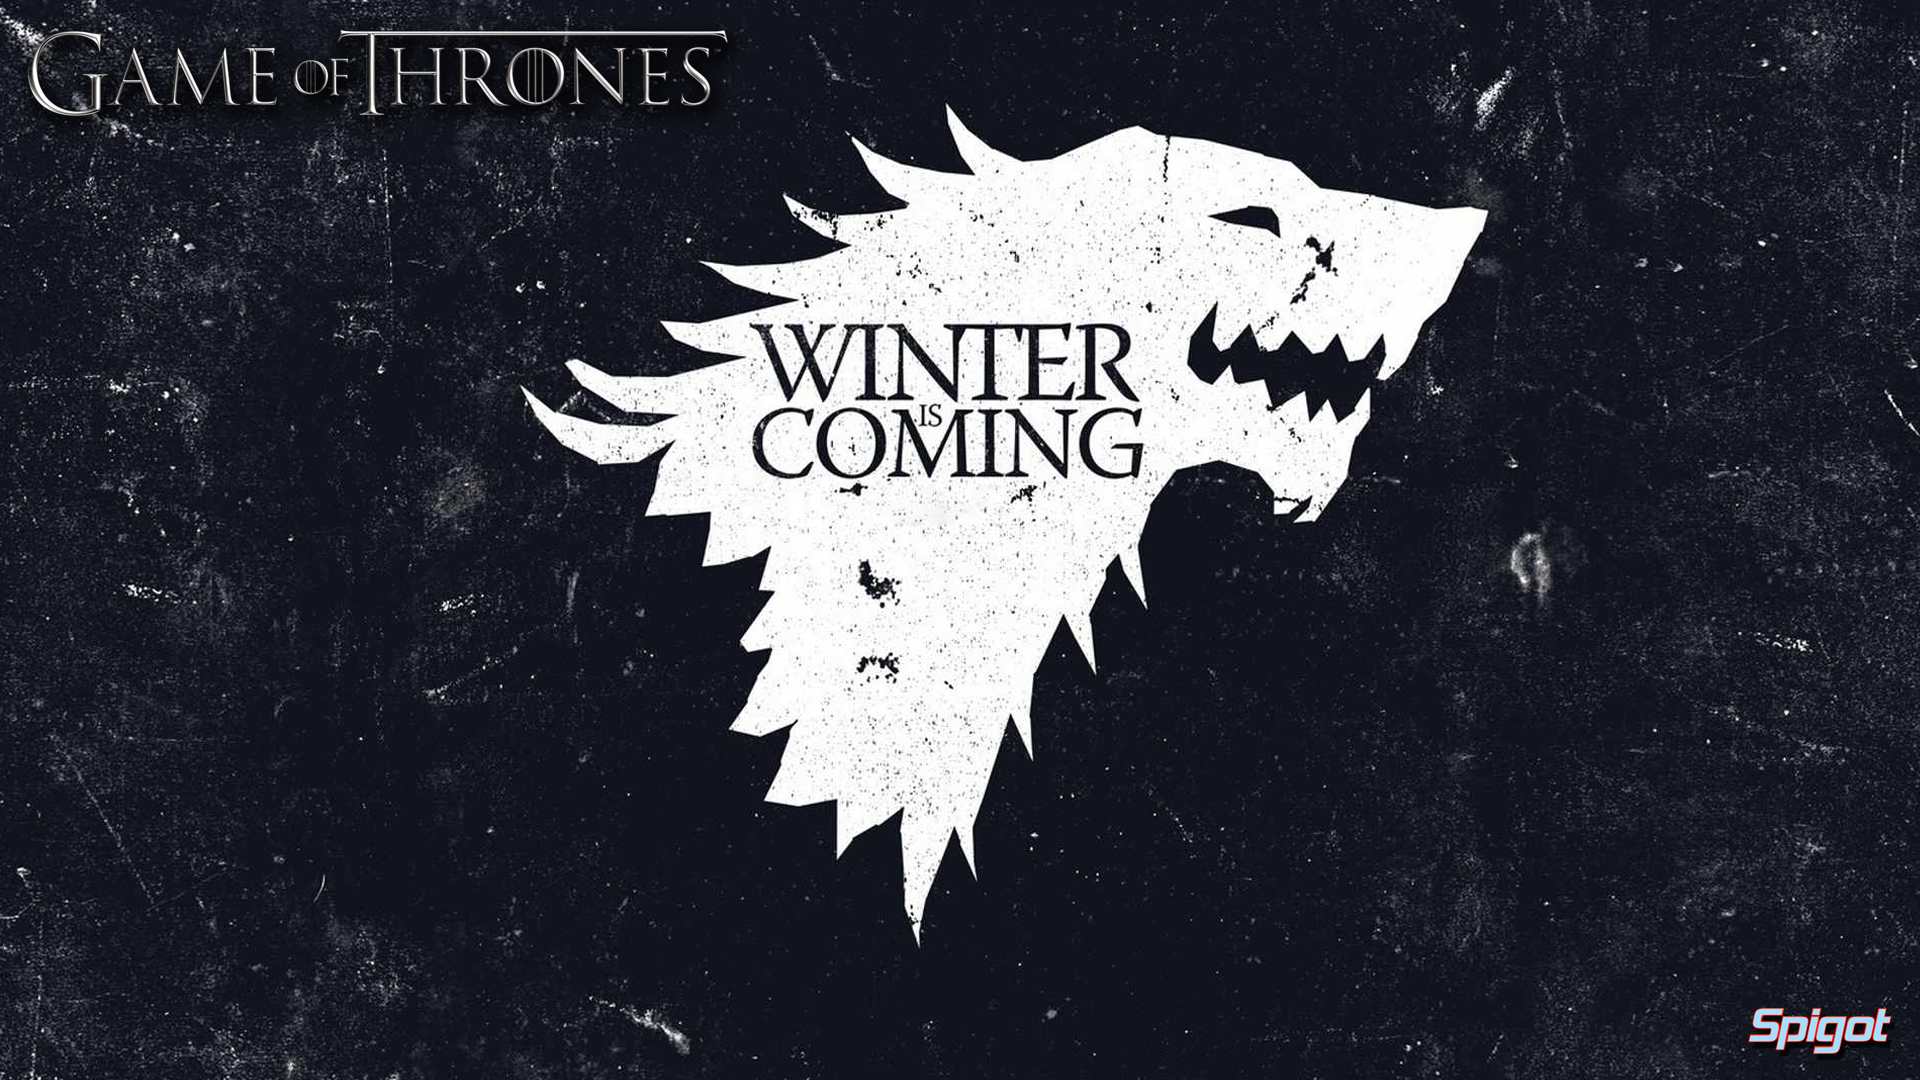 game of thrones wallpapers | george spigot's blog